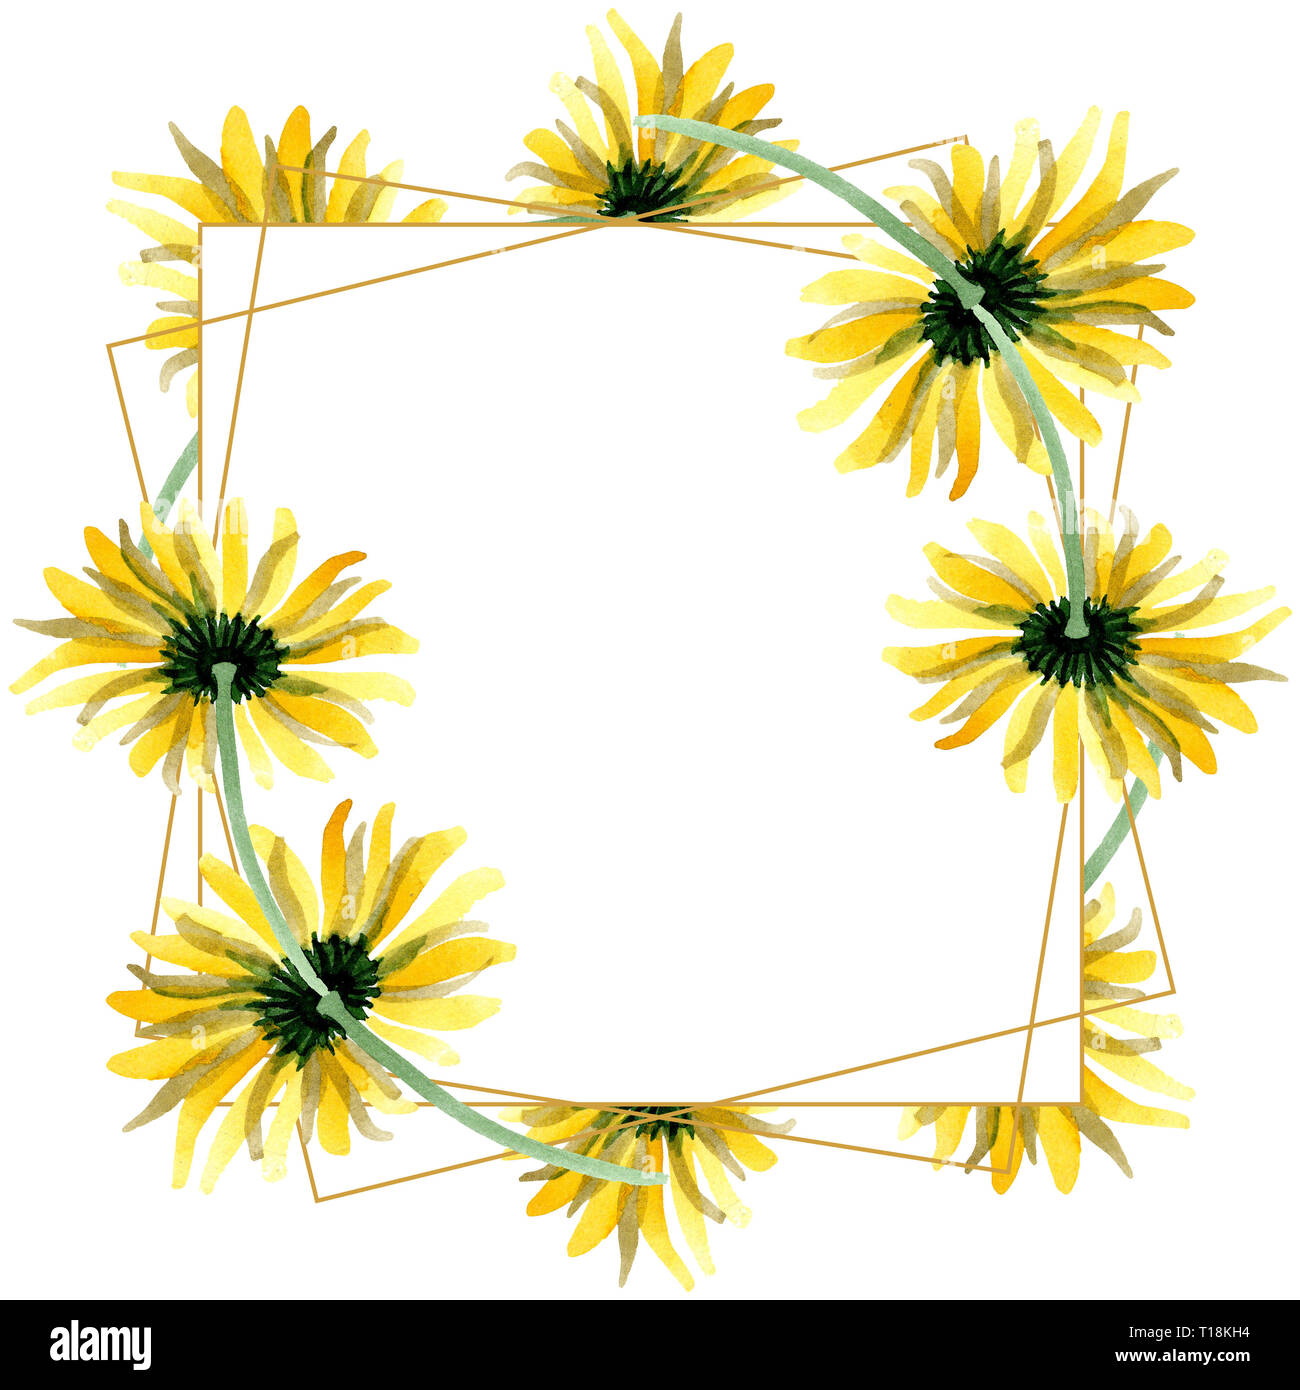 yellow daisy floral botanical flowers watercolor background illustration set frame border crystal ornament square stock photo alamy https www alamy com yellow daisy floral botanical flowers watercolor background illustration set frame border crystal ornament square image241750800 html